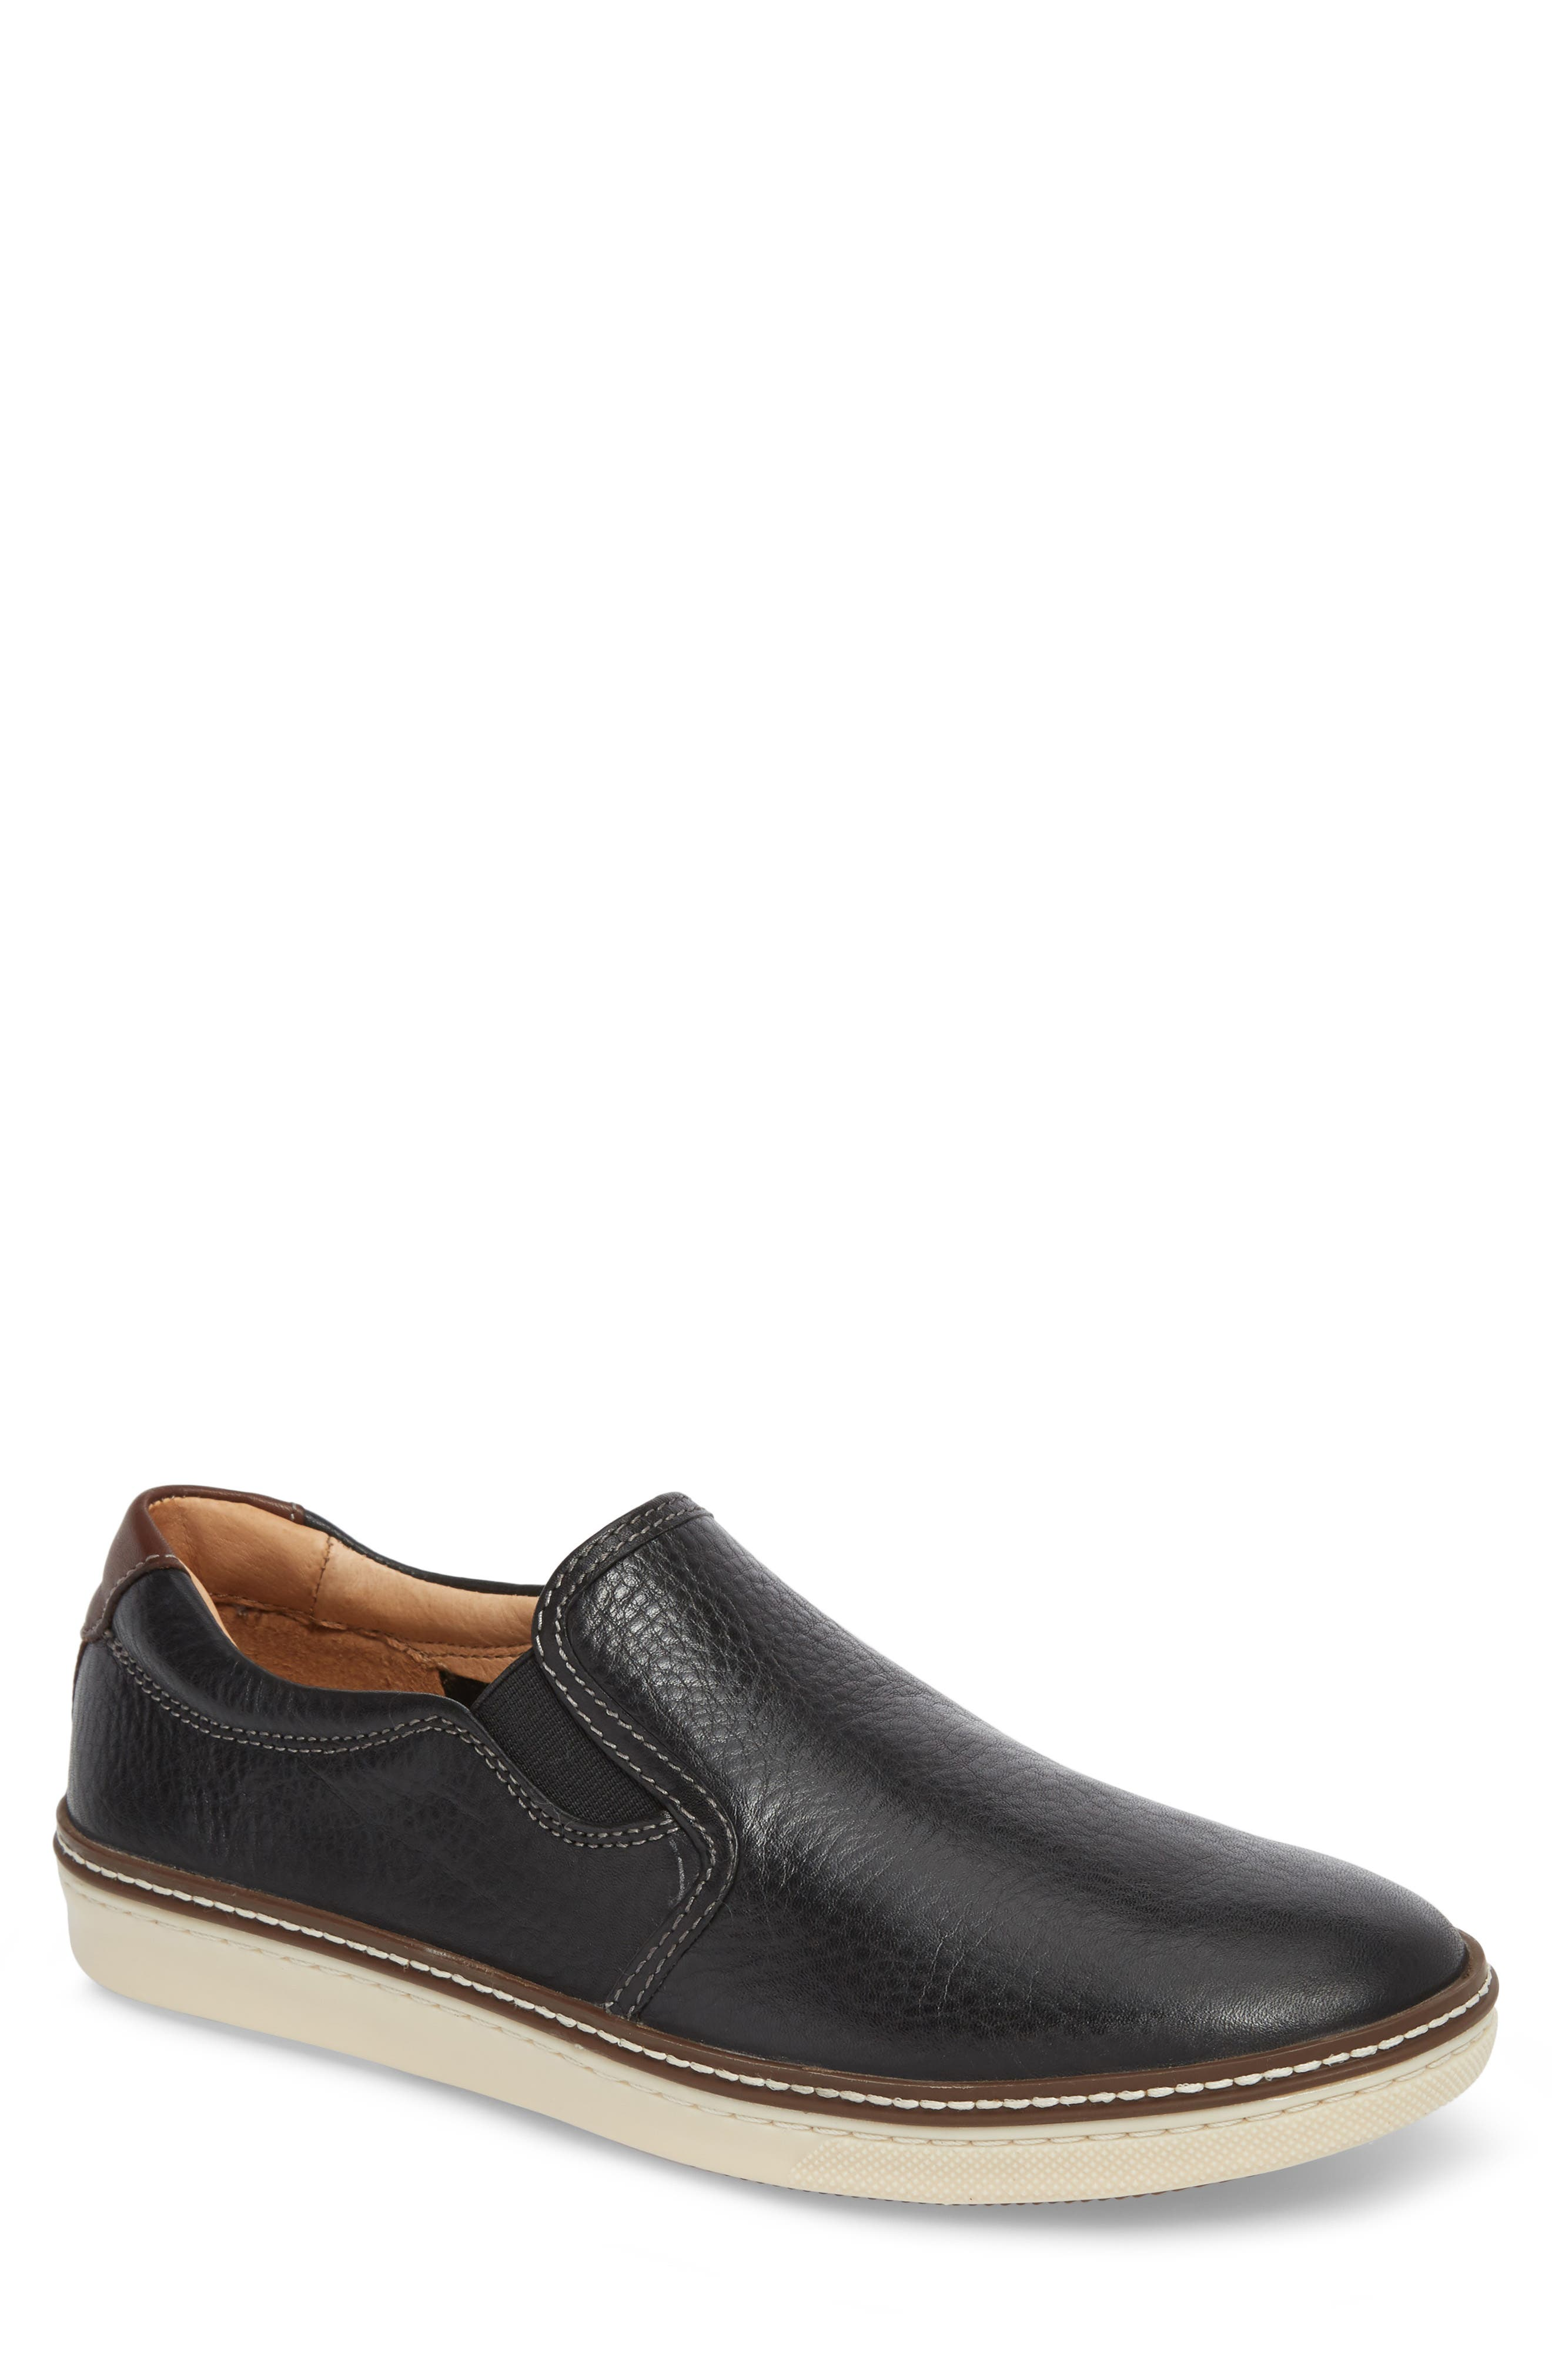 McGuffey Slip-On Sneaker,                         Main,                         color, BLACK LEATHER